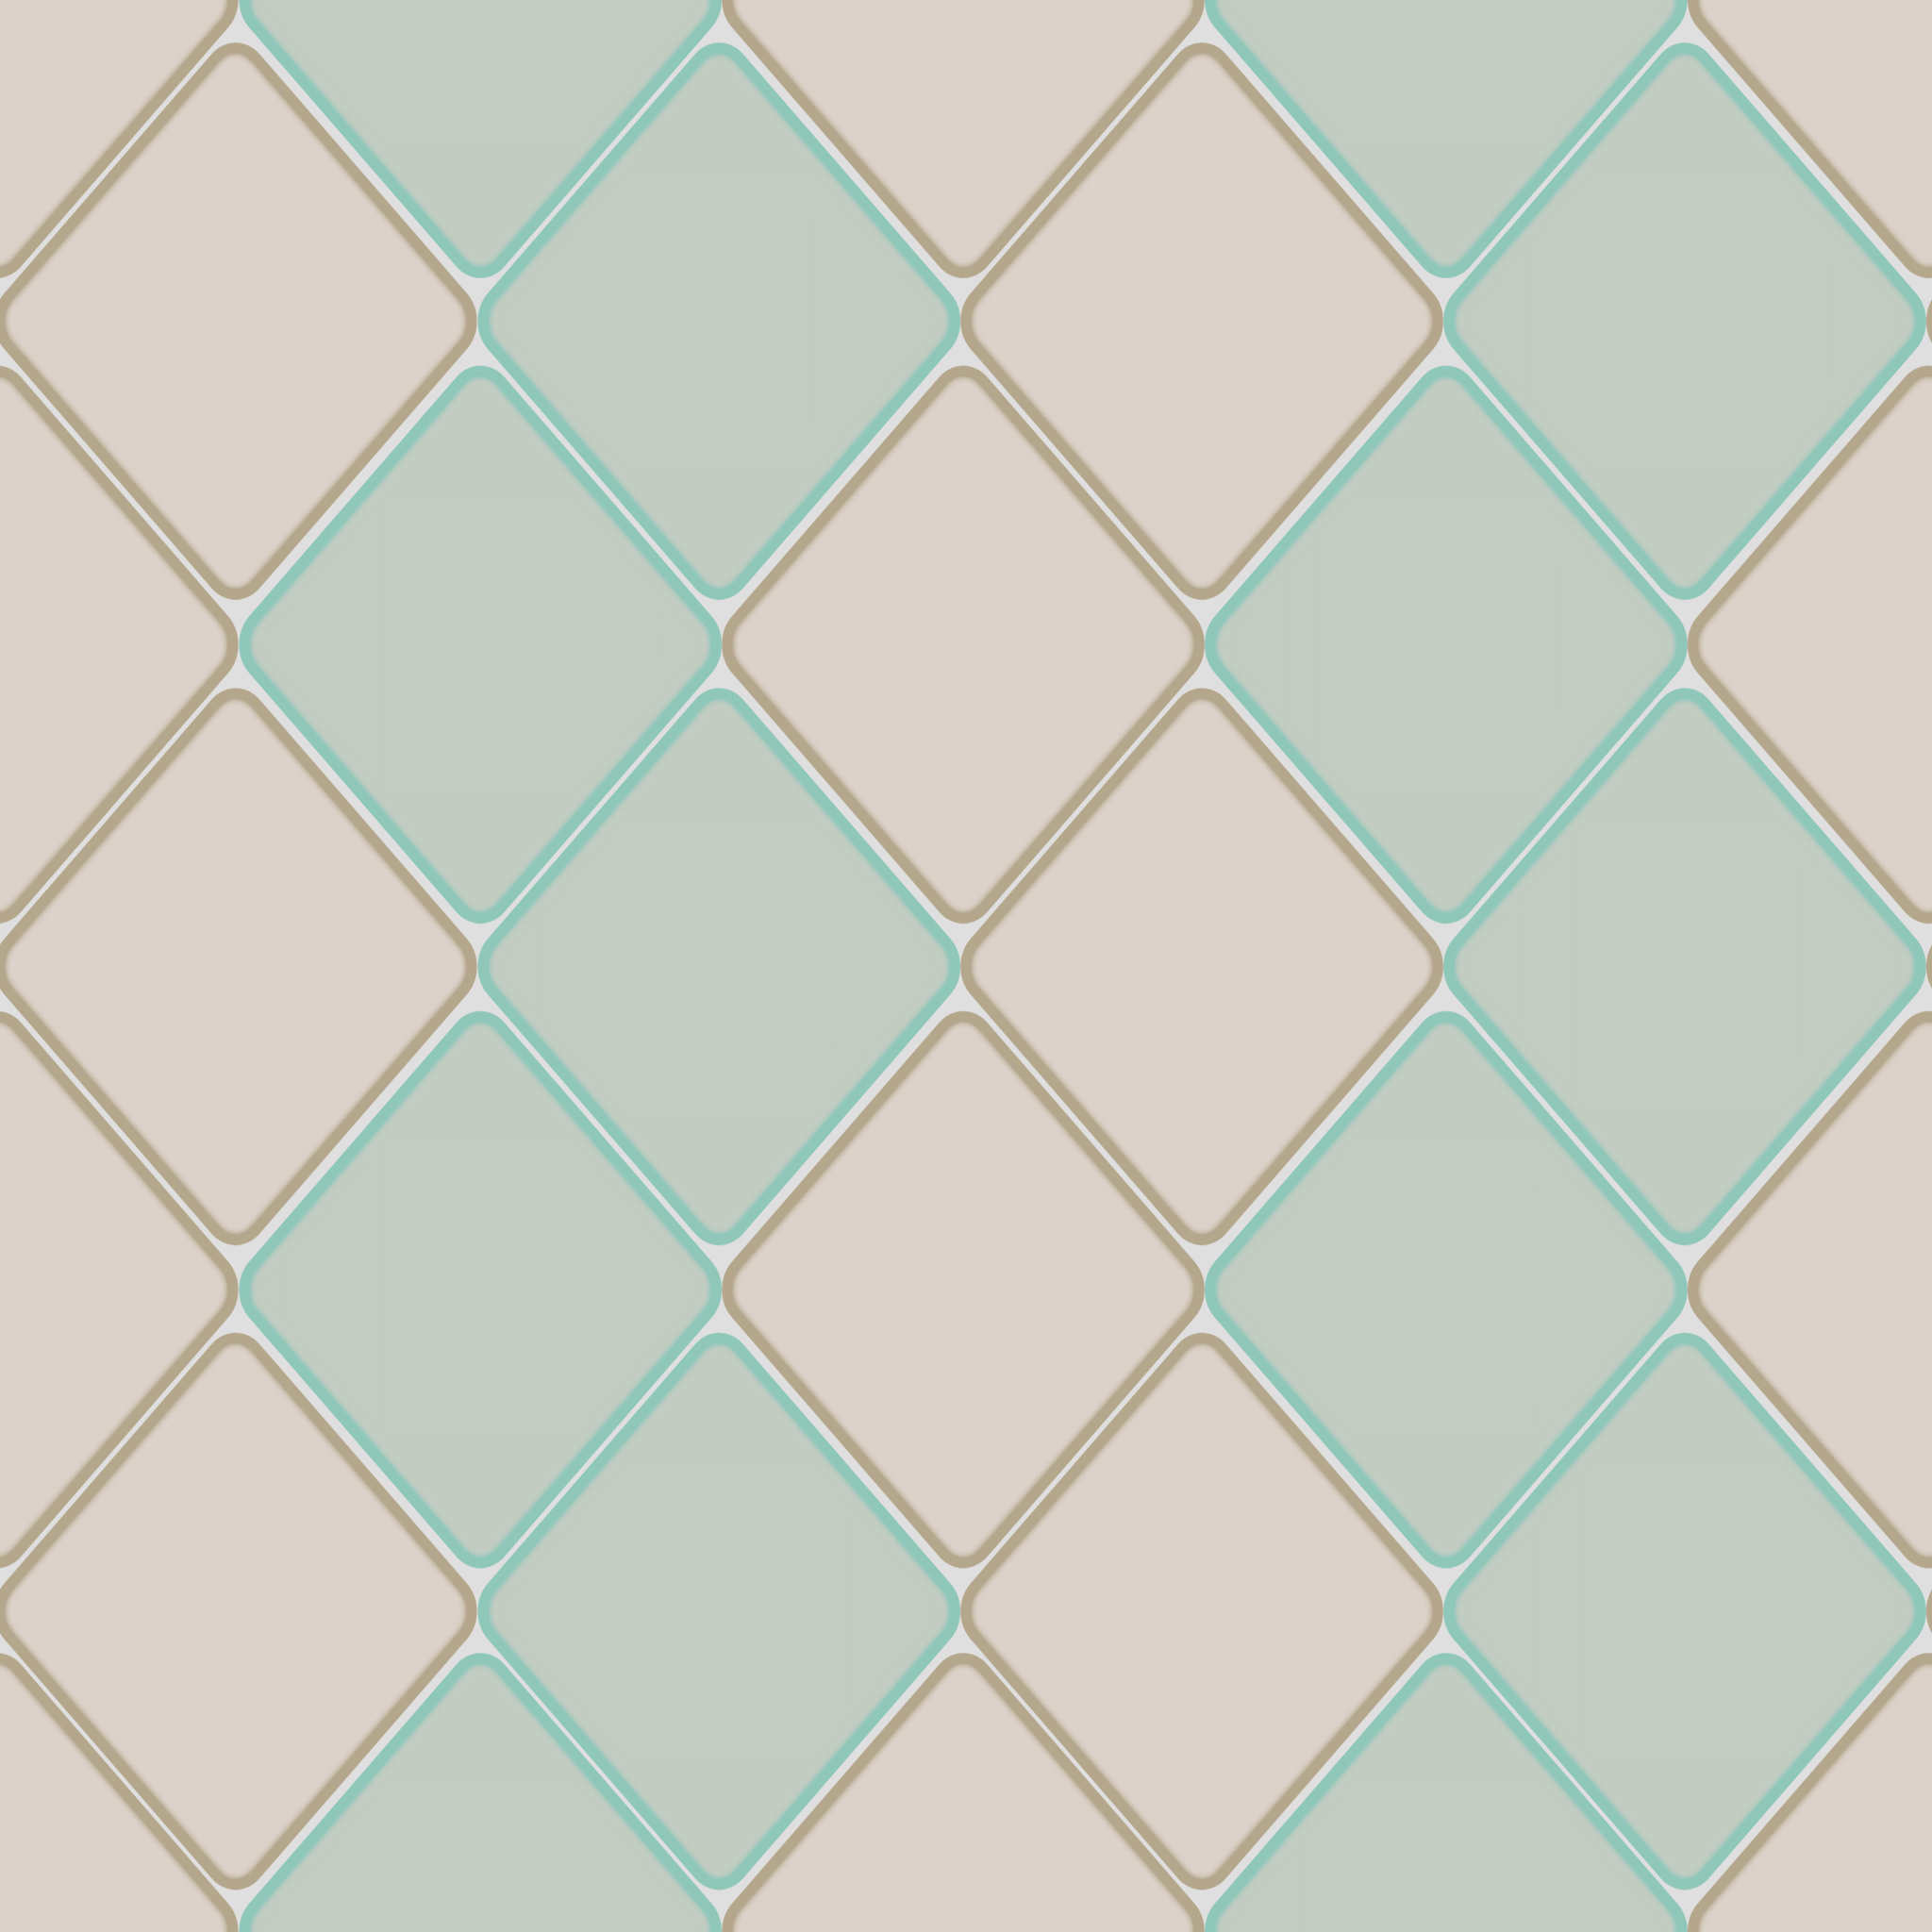 Blue Checkered Tiles.png